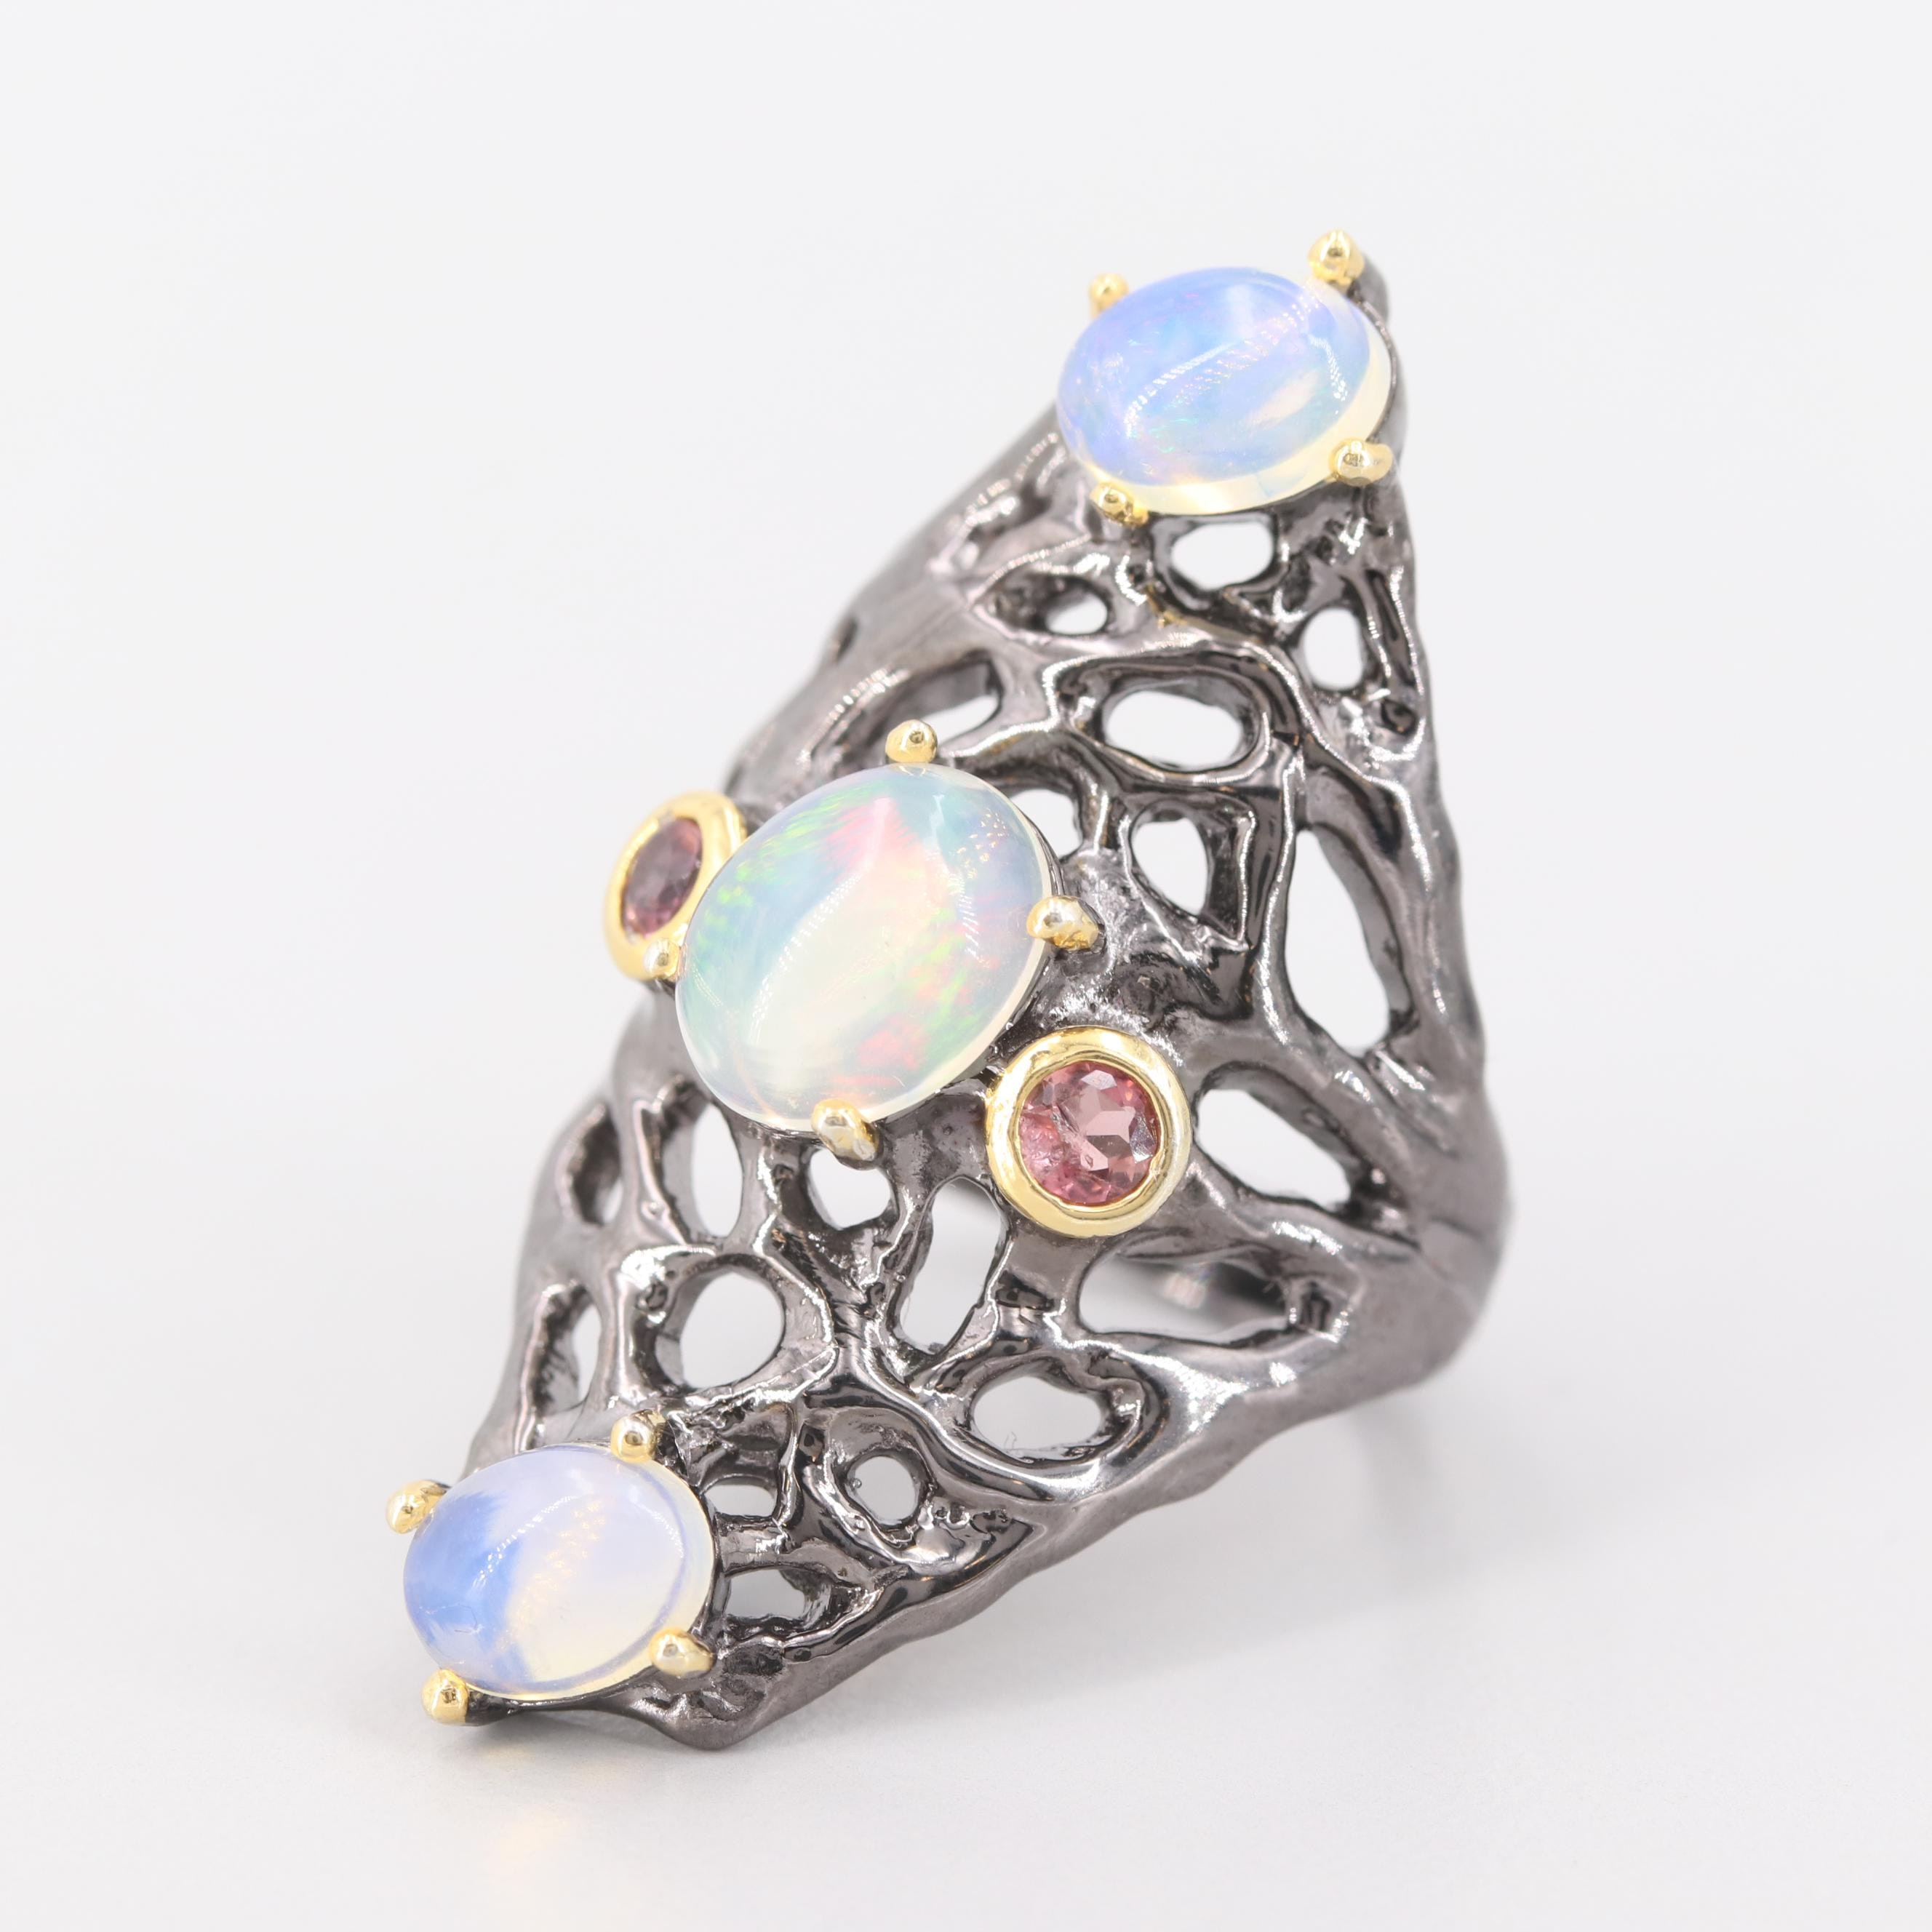 Sterling Silver Opal and Garnet Ring with Gold Wash Accents